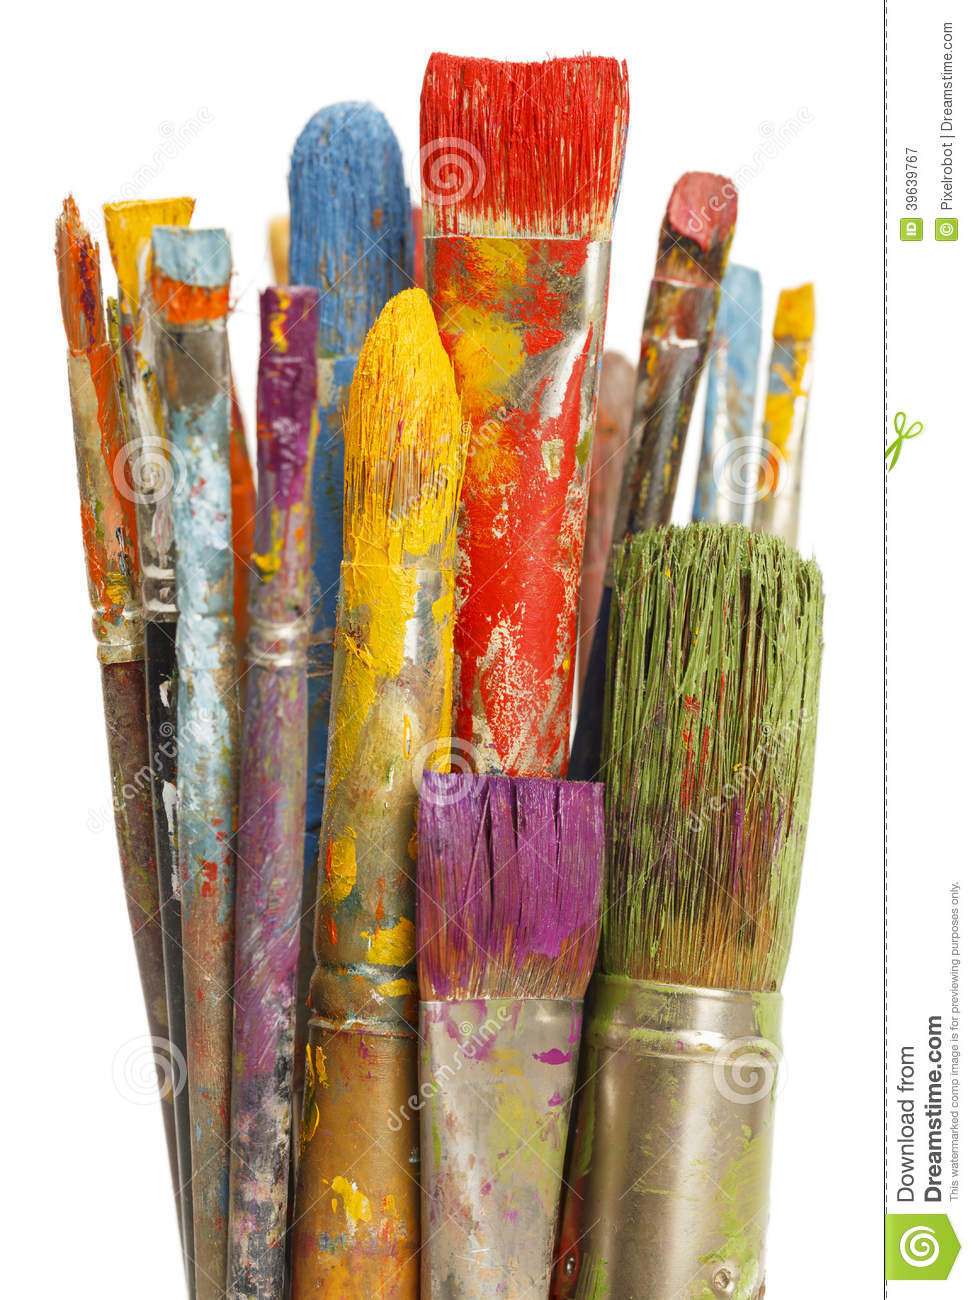 How to clean paintbrushes - How To Clean Dried Up Paint Brushes